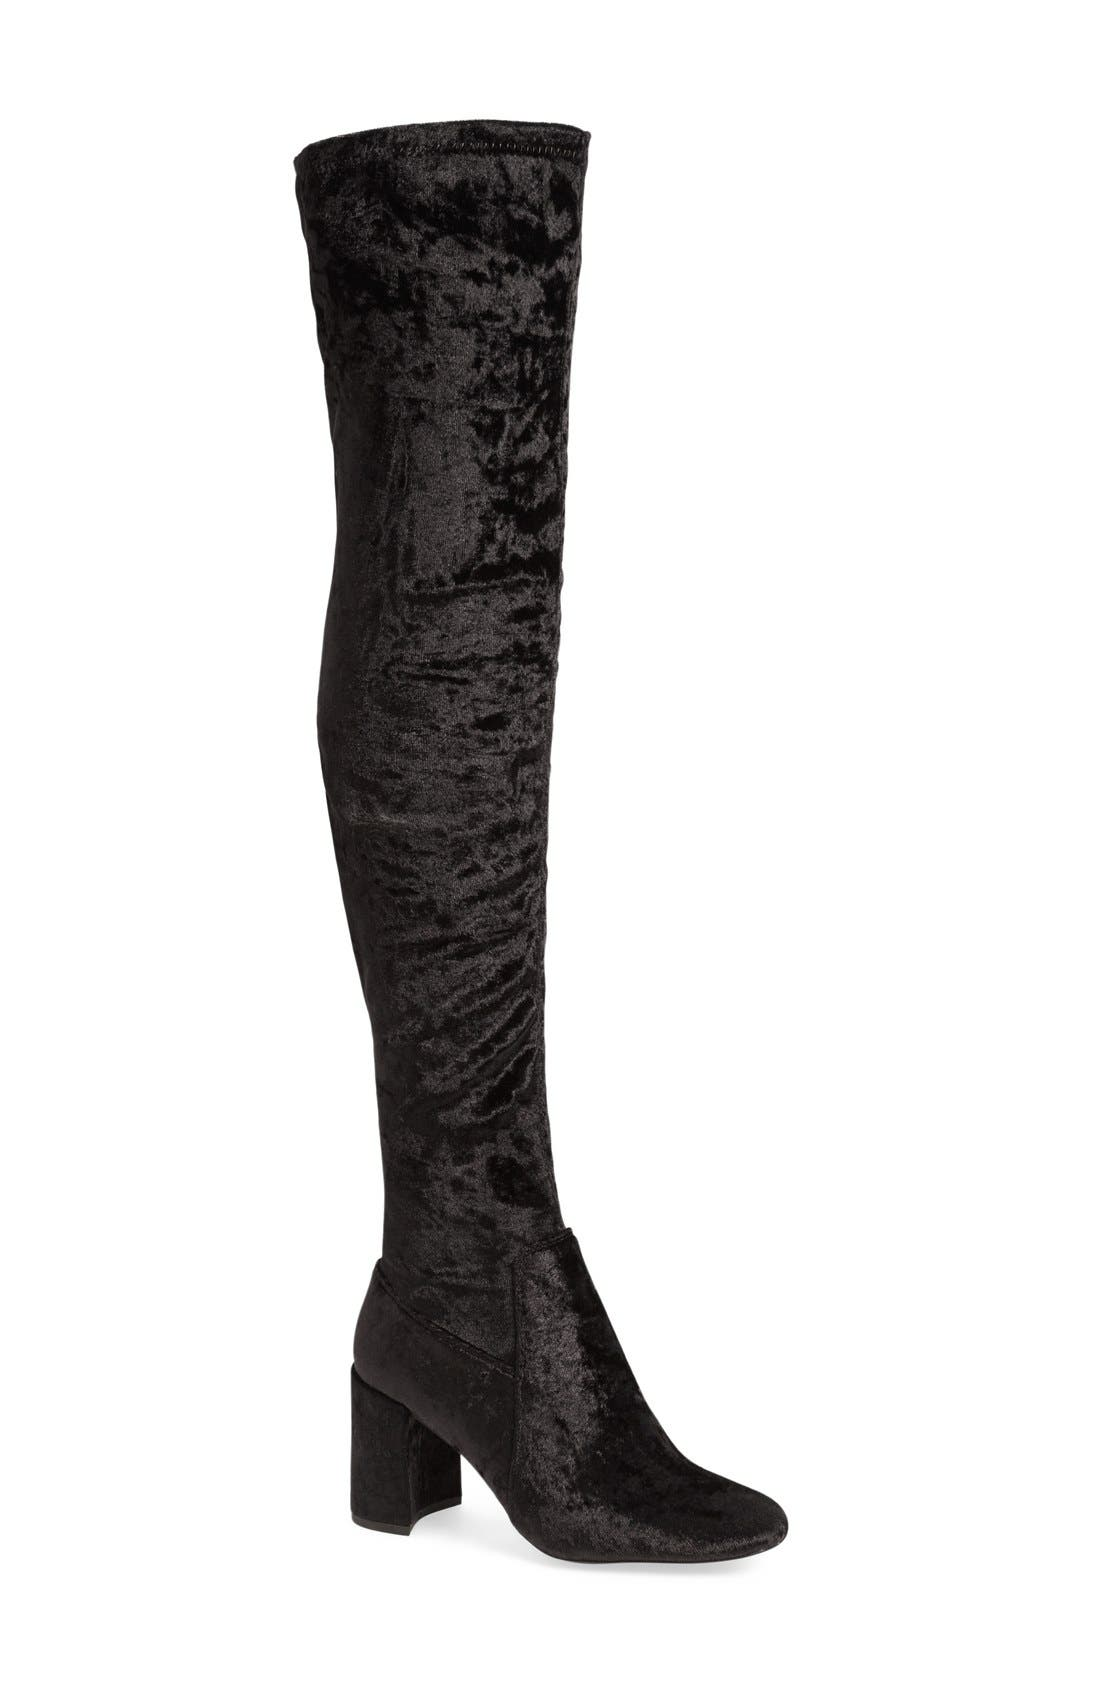 Alternate Image 1 Selected - Jeffrey Campbell 'Cienega' Over the Knee Boot (Women)